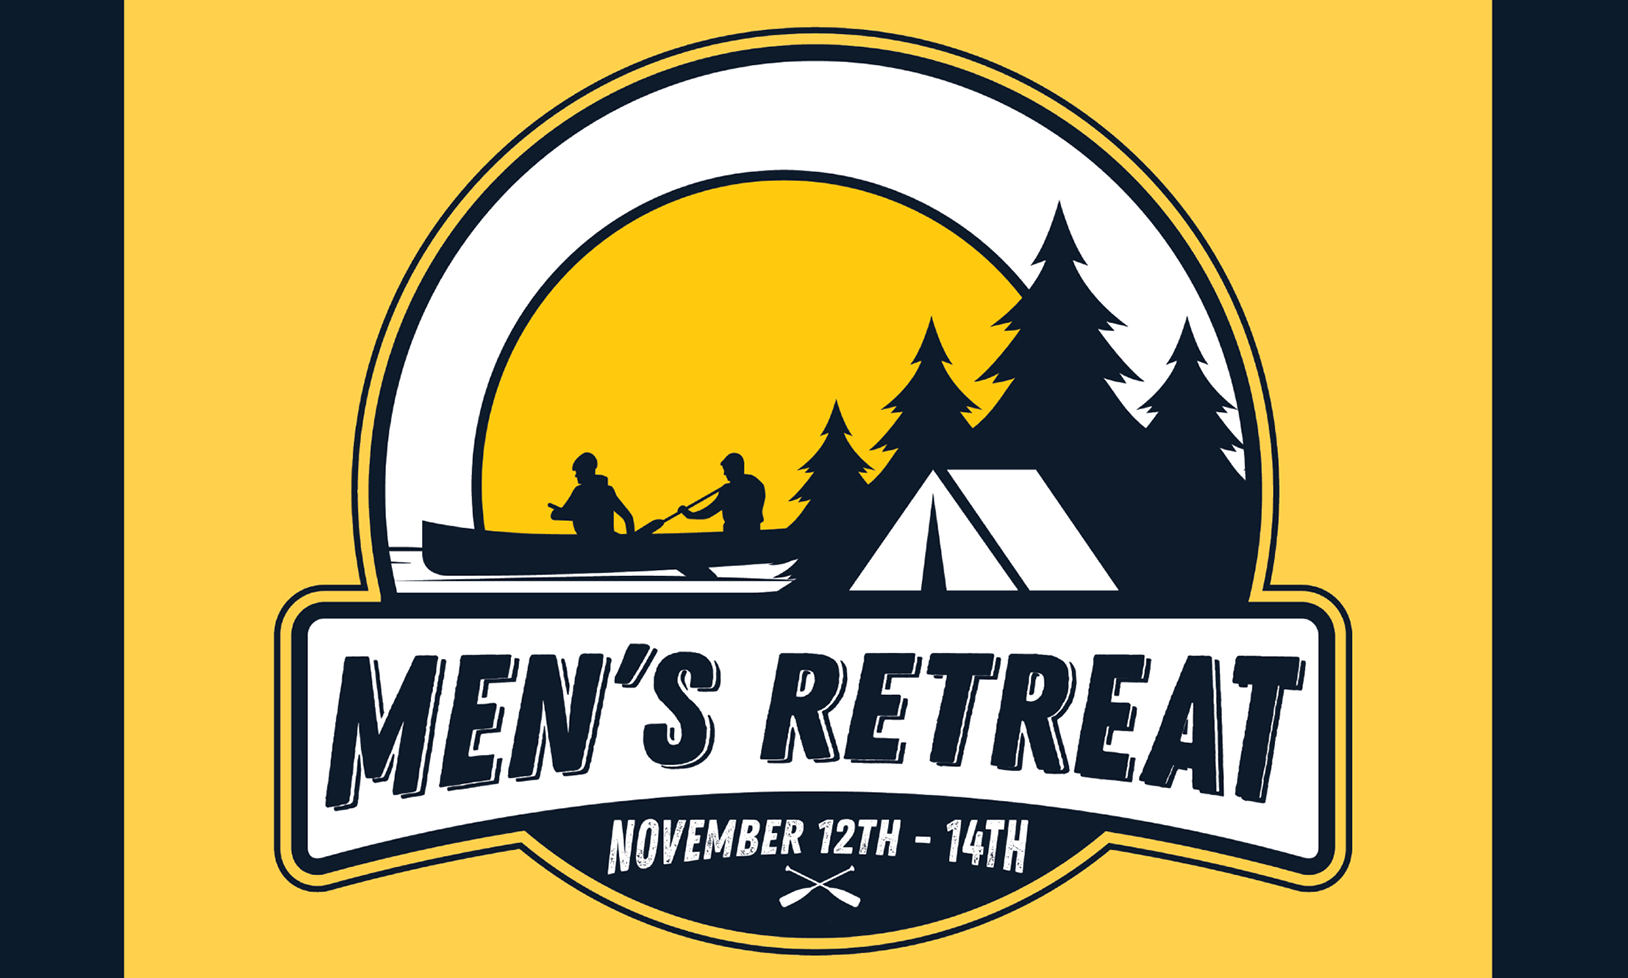 November 12th - 14th: Sign Up Here